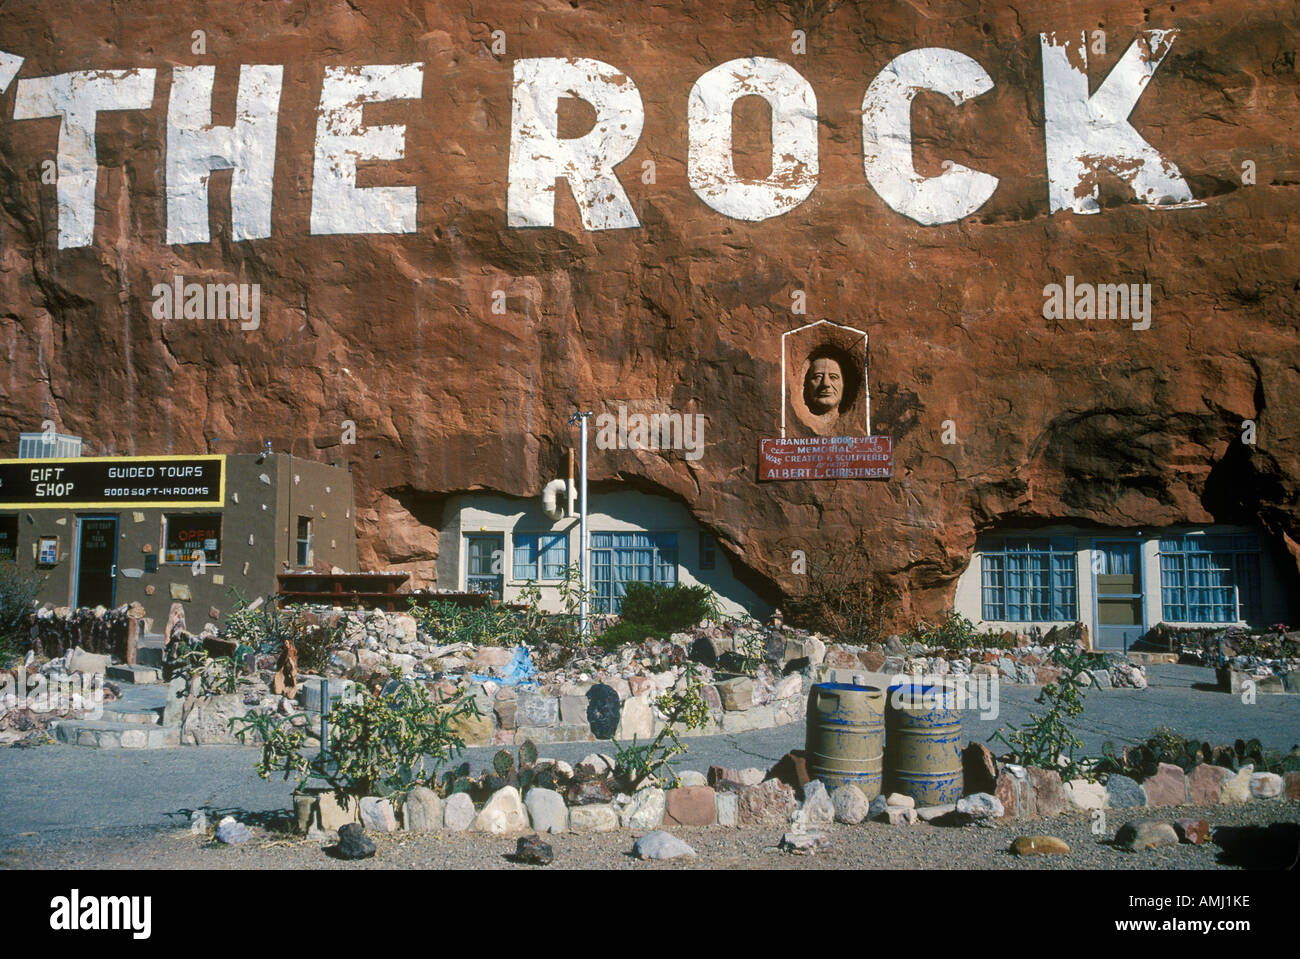 Roadside attraction the Rock House in southern UT - Stock Image